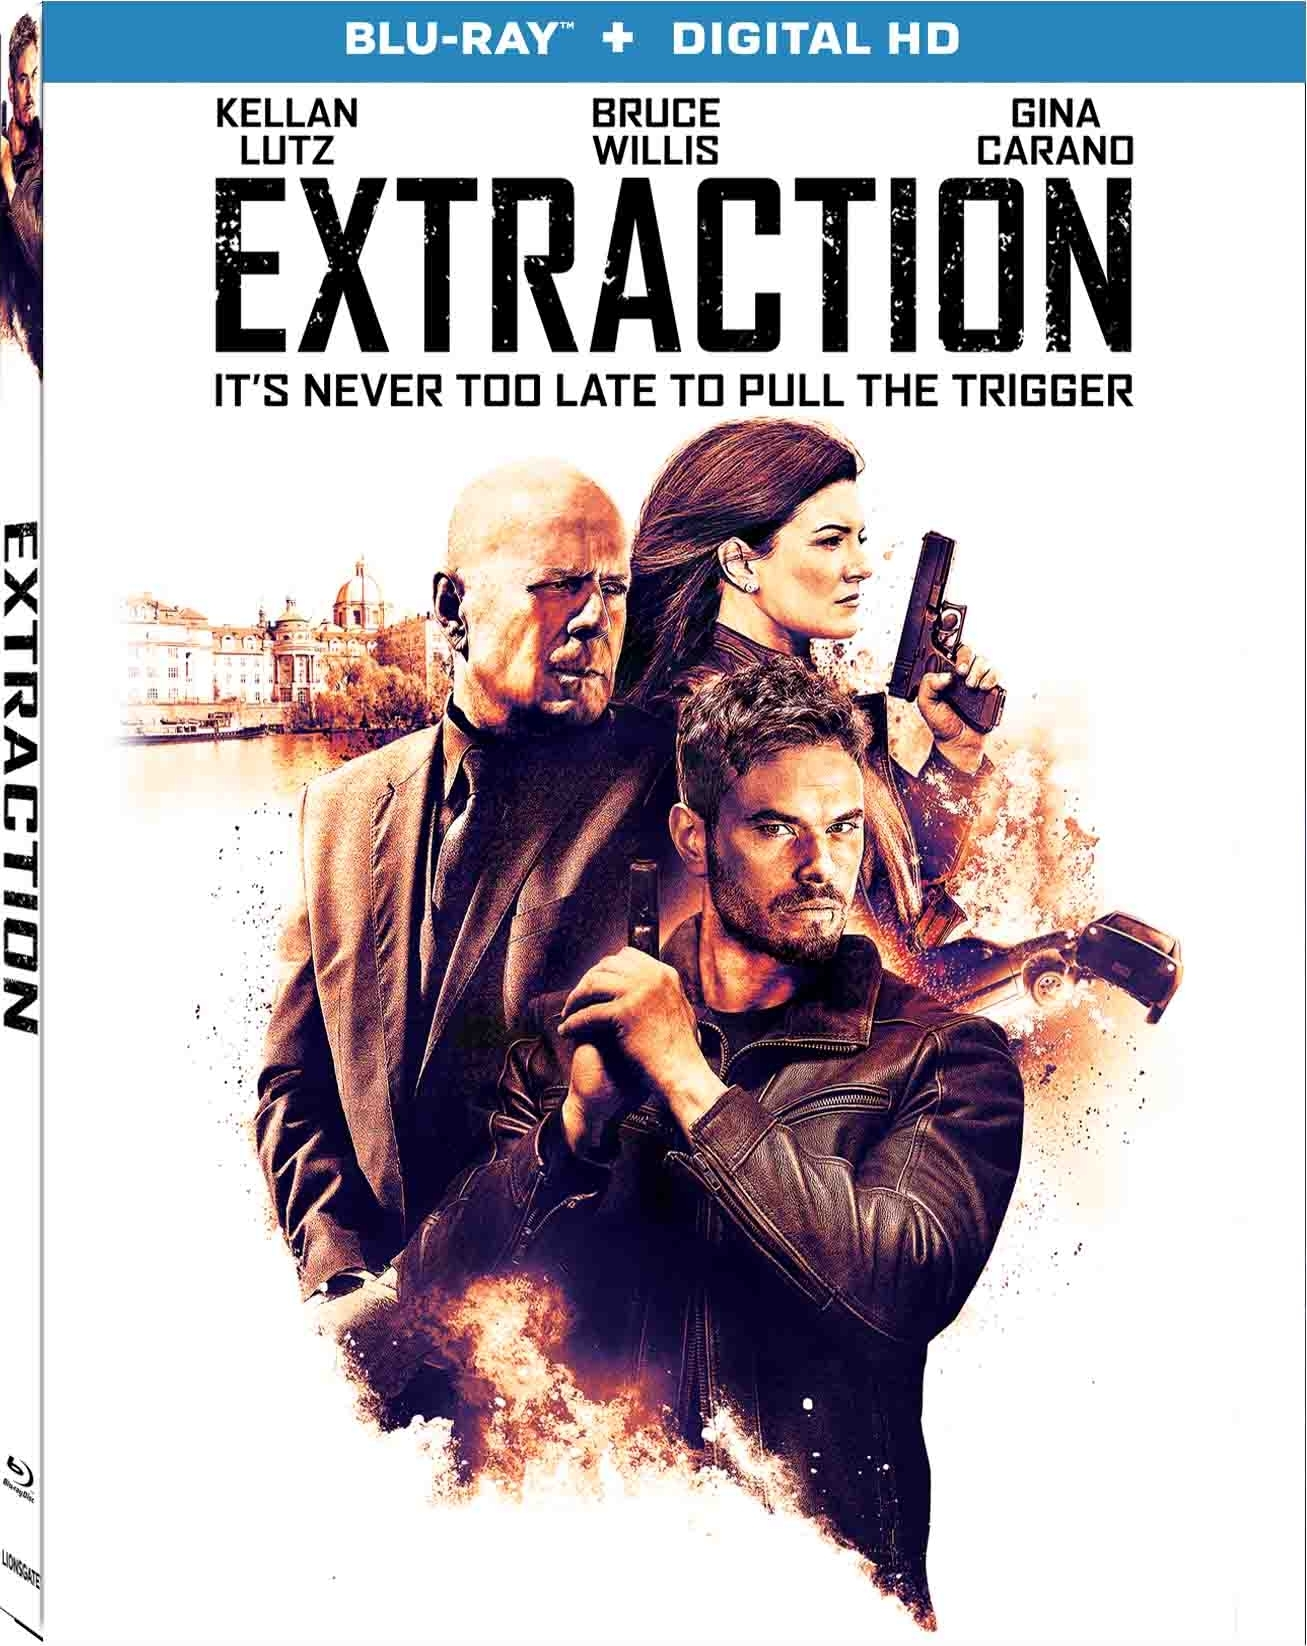 Extraction (2015) Blu-ray